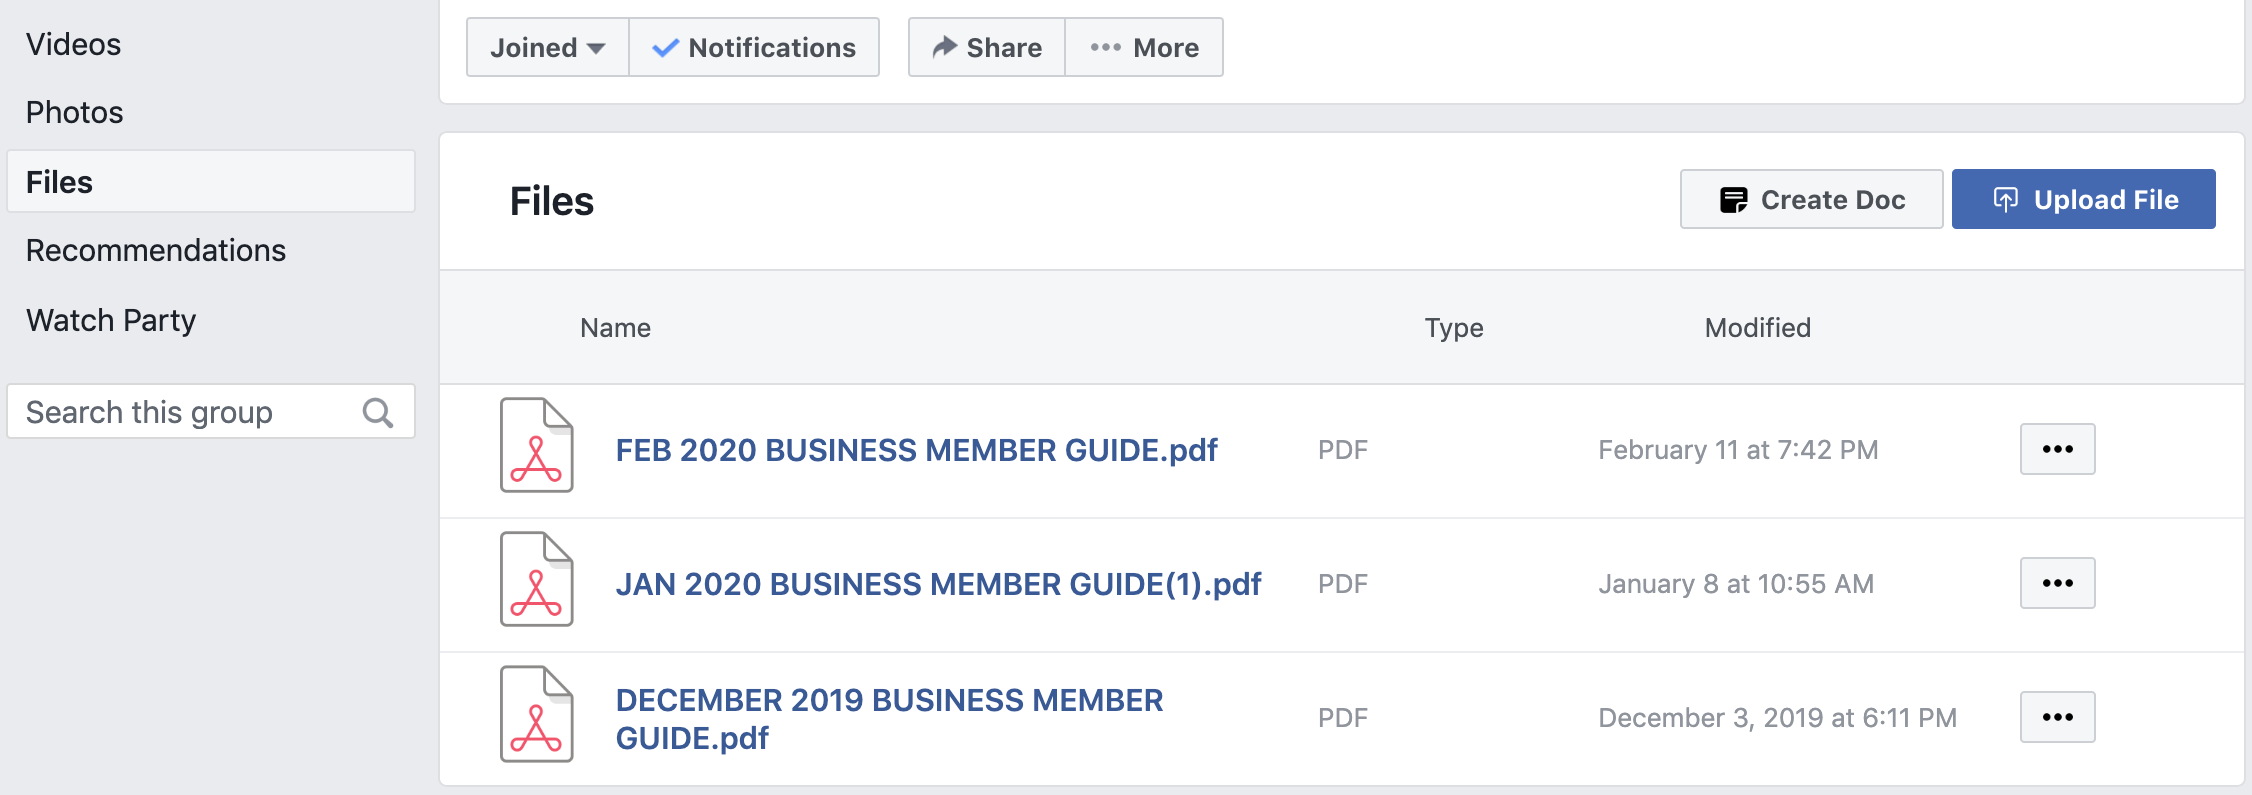 how-to-create-a-facebook-group-2020-23